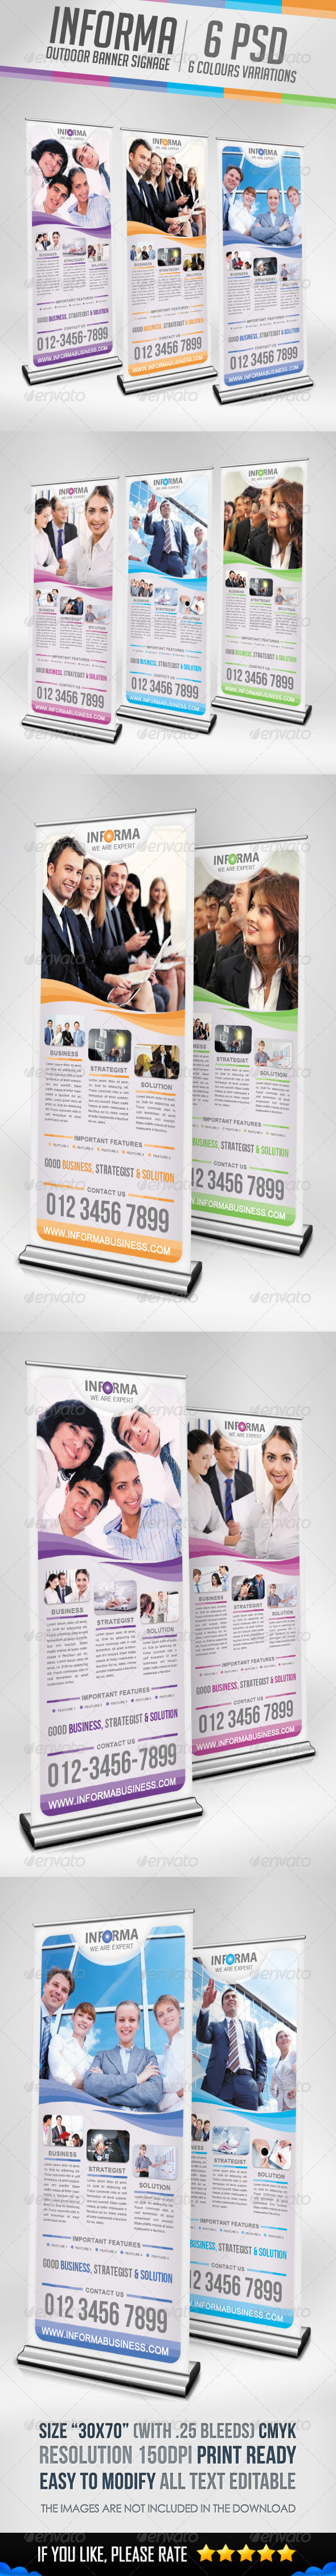 GraphicRiver Informa Outdoor Banner Signage 3730861